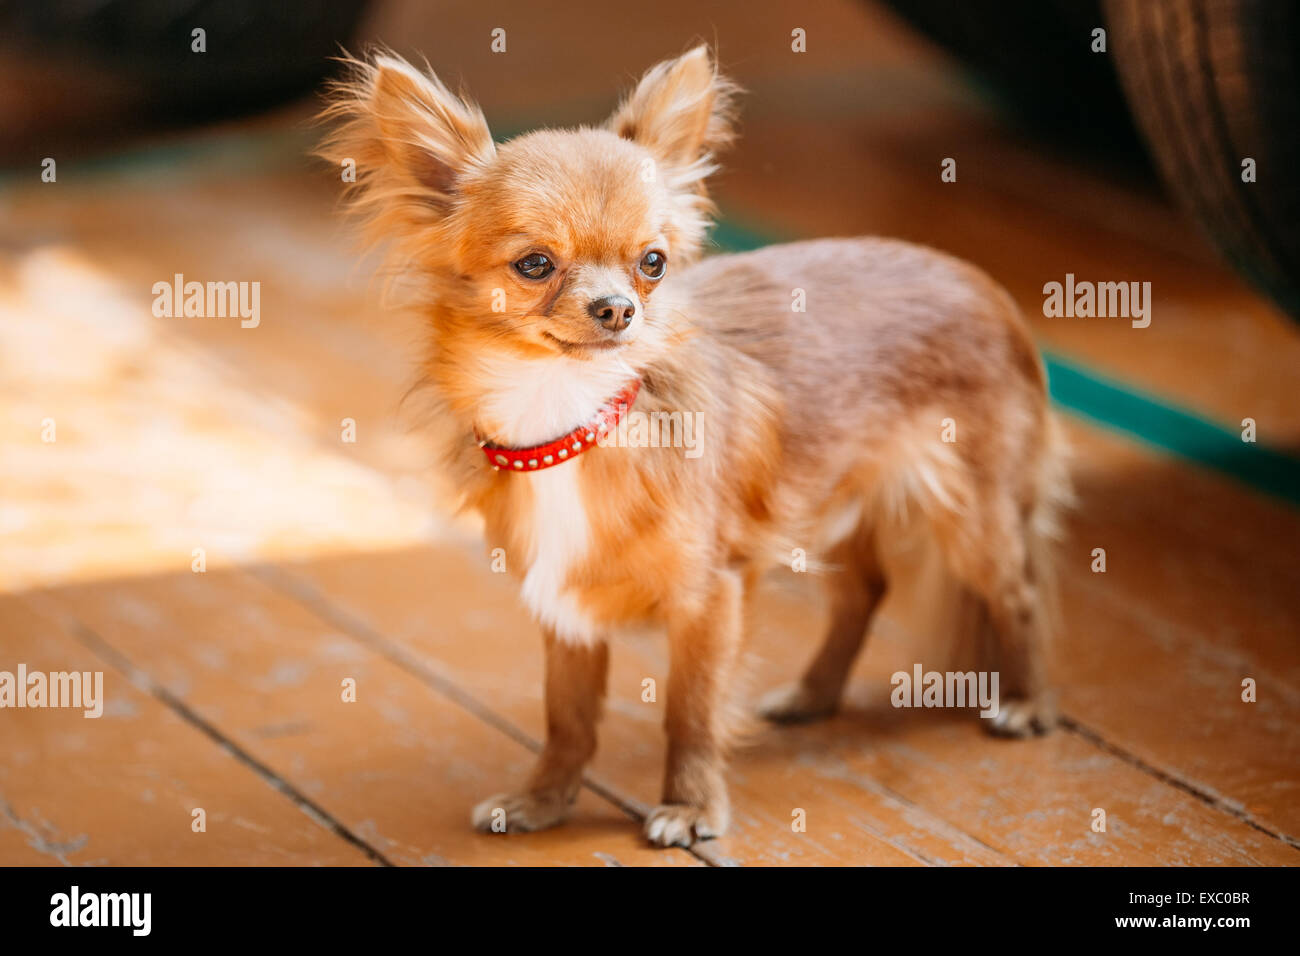 Beautiful Young Red Brown And White  Tiny Chihuahua Dog Staying On Wooden Floor - Stock Image